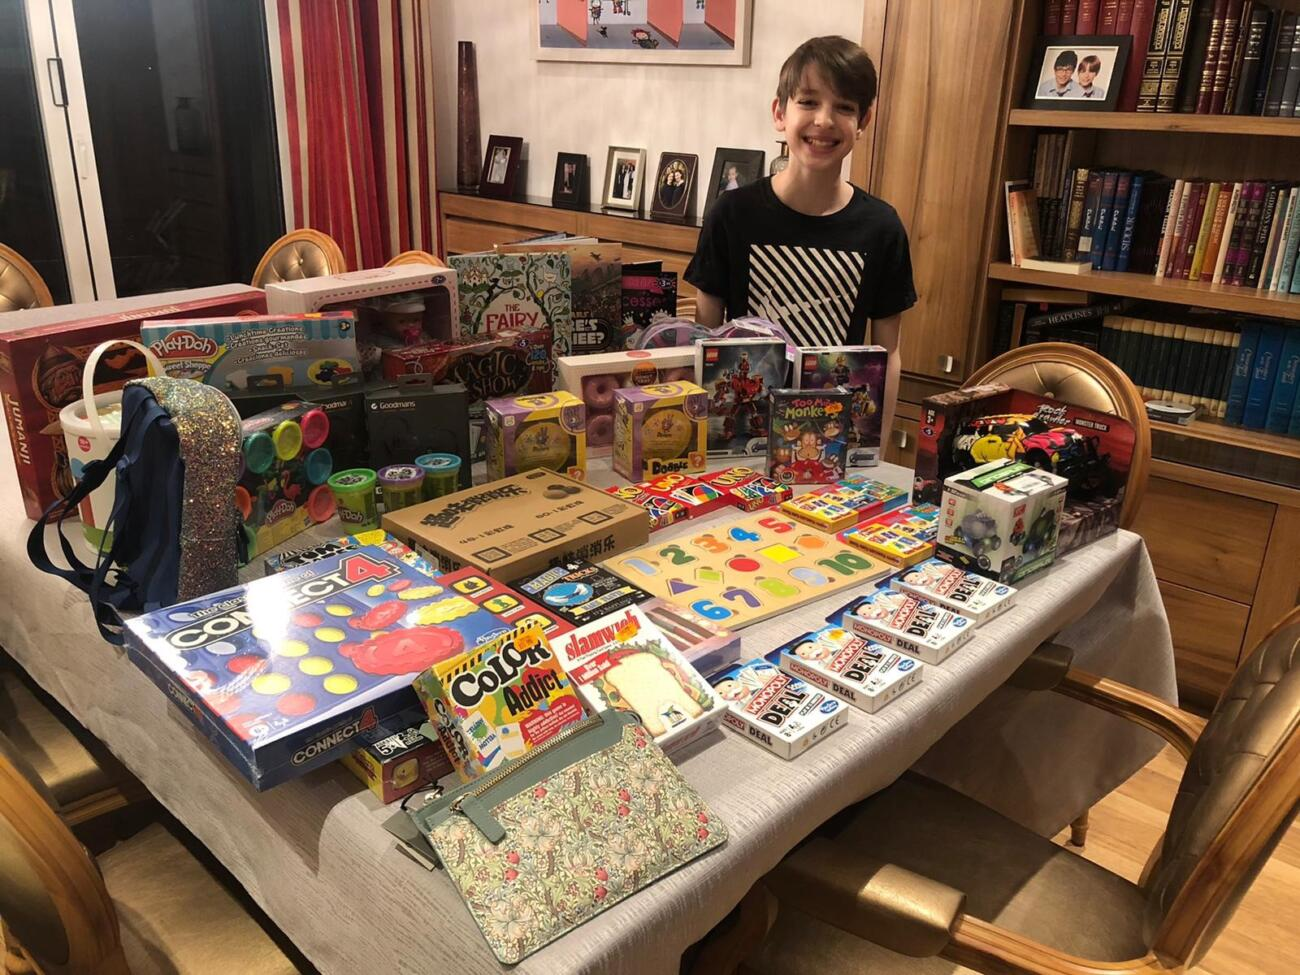 Bar Mitzvah Boy Leads £15K Toy Collection